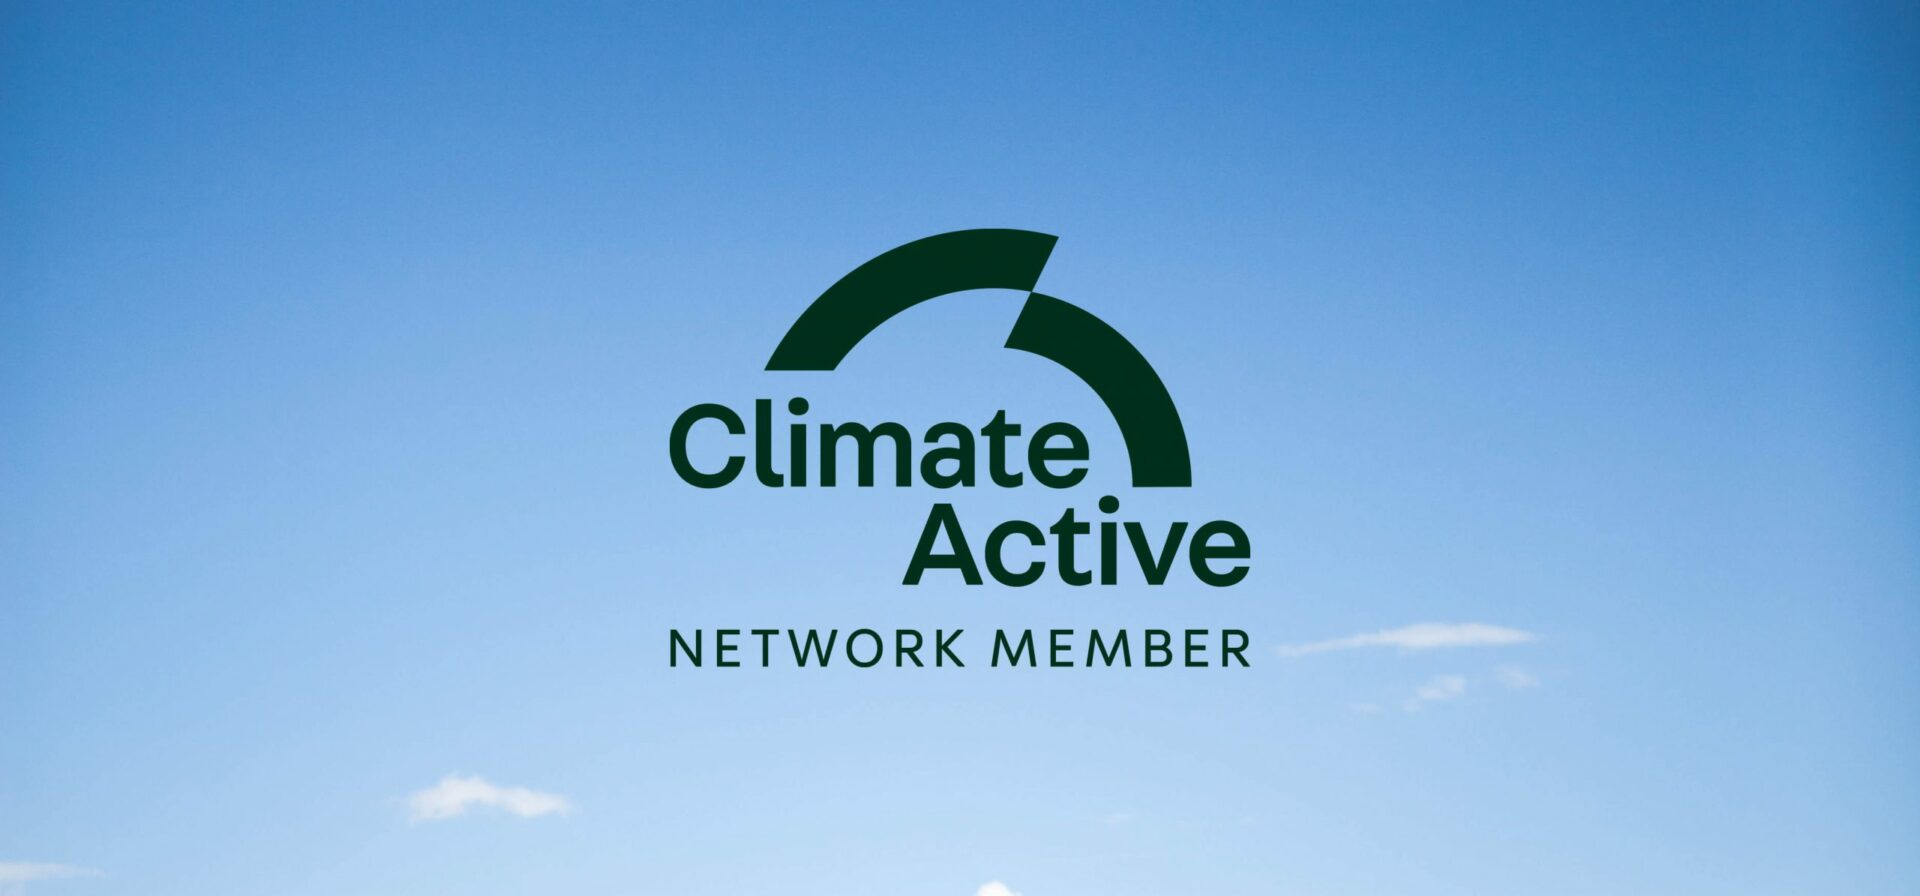 Image of blue sky with the climate active network member logo